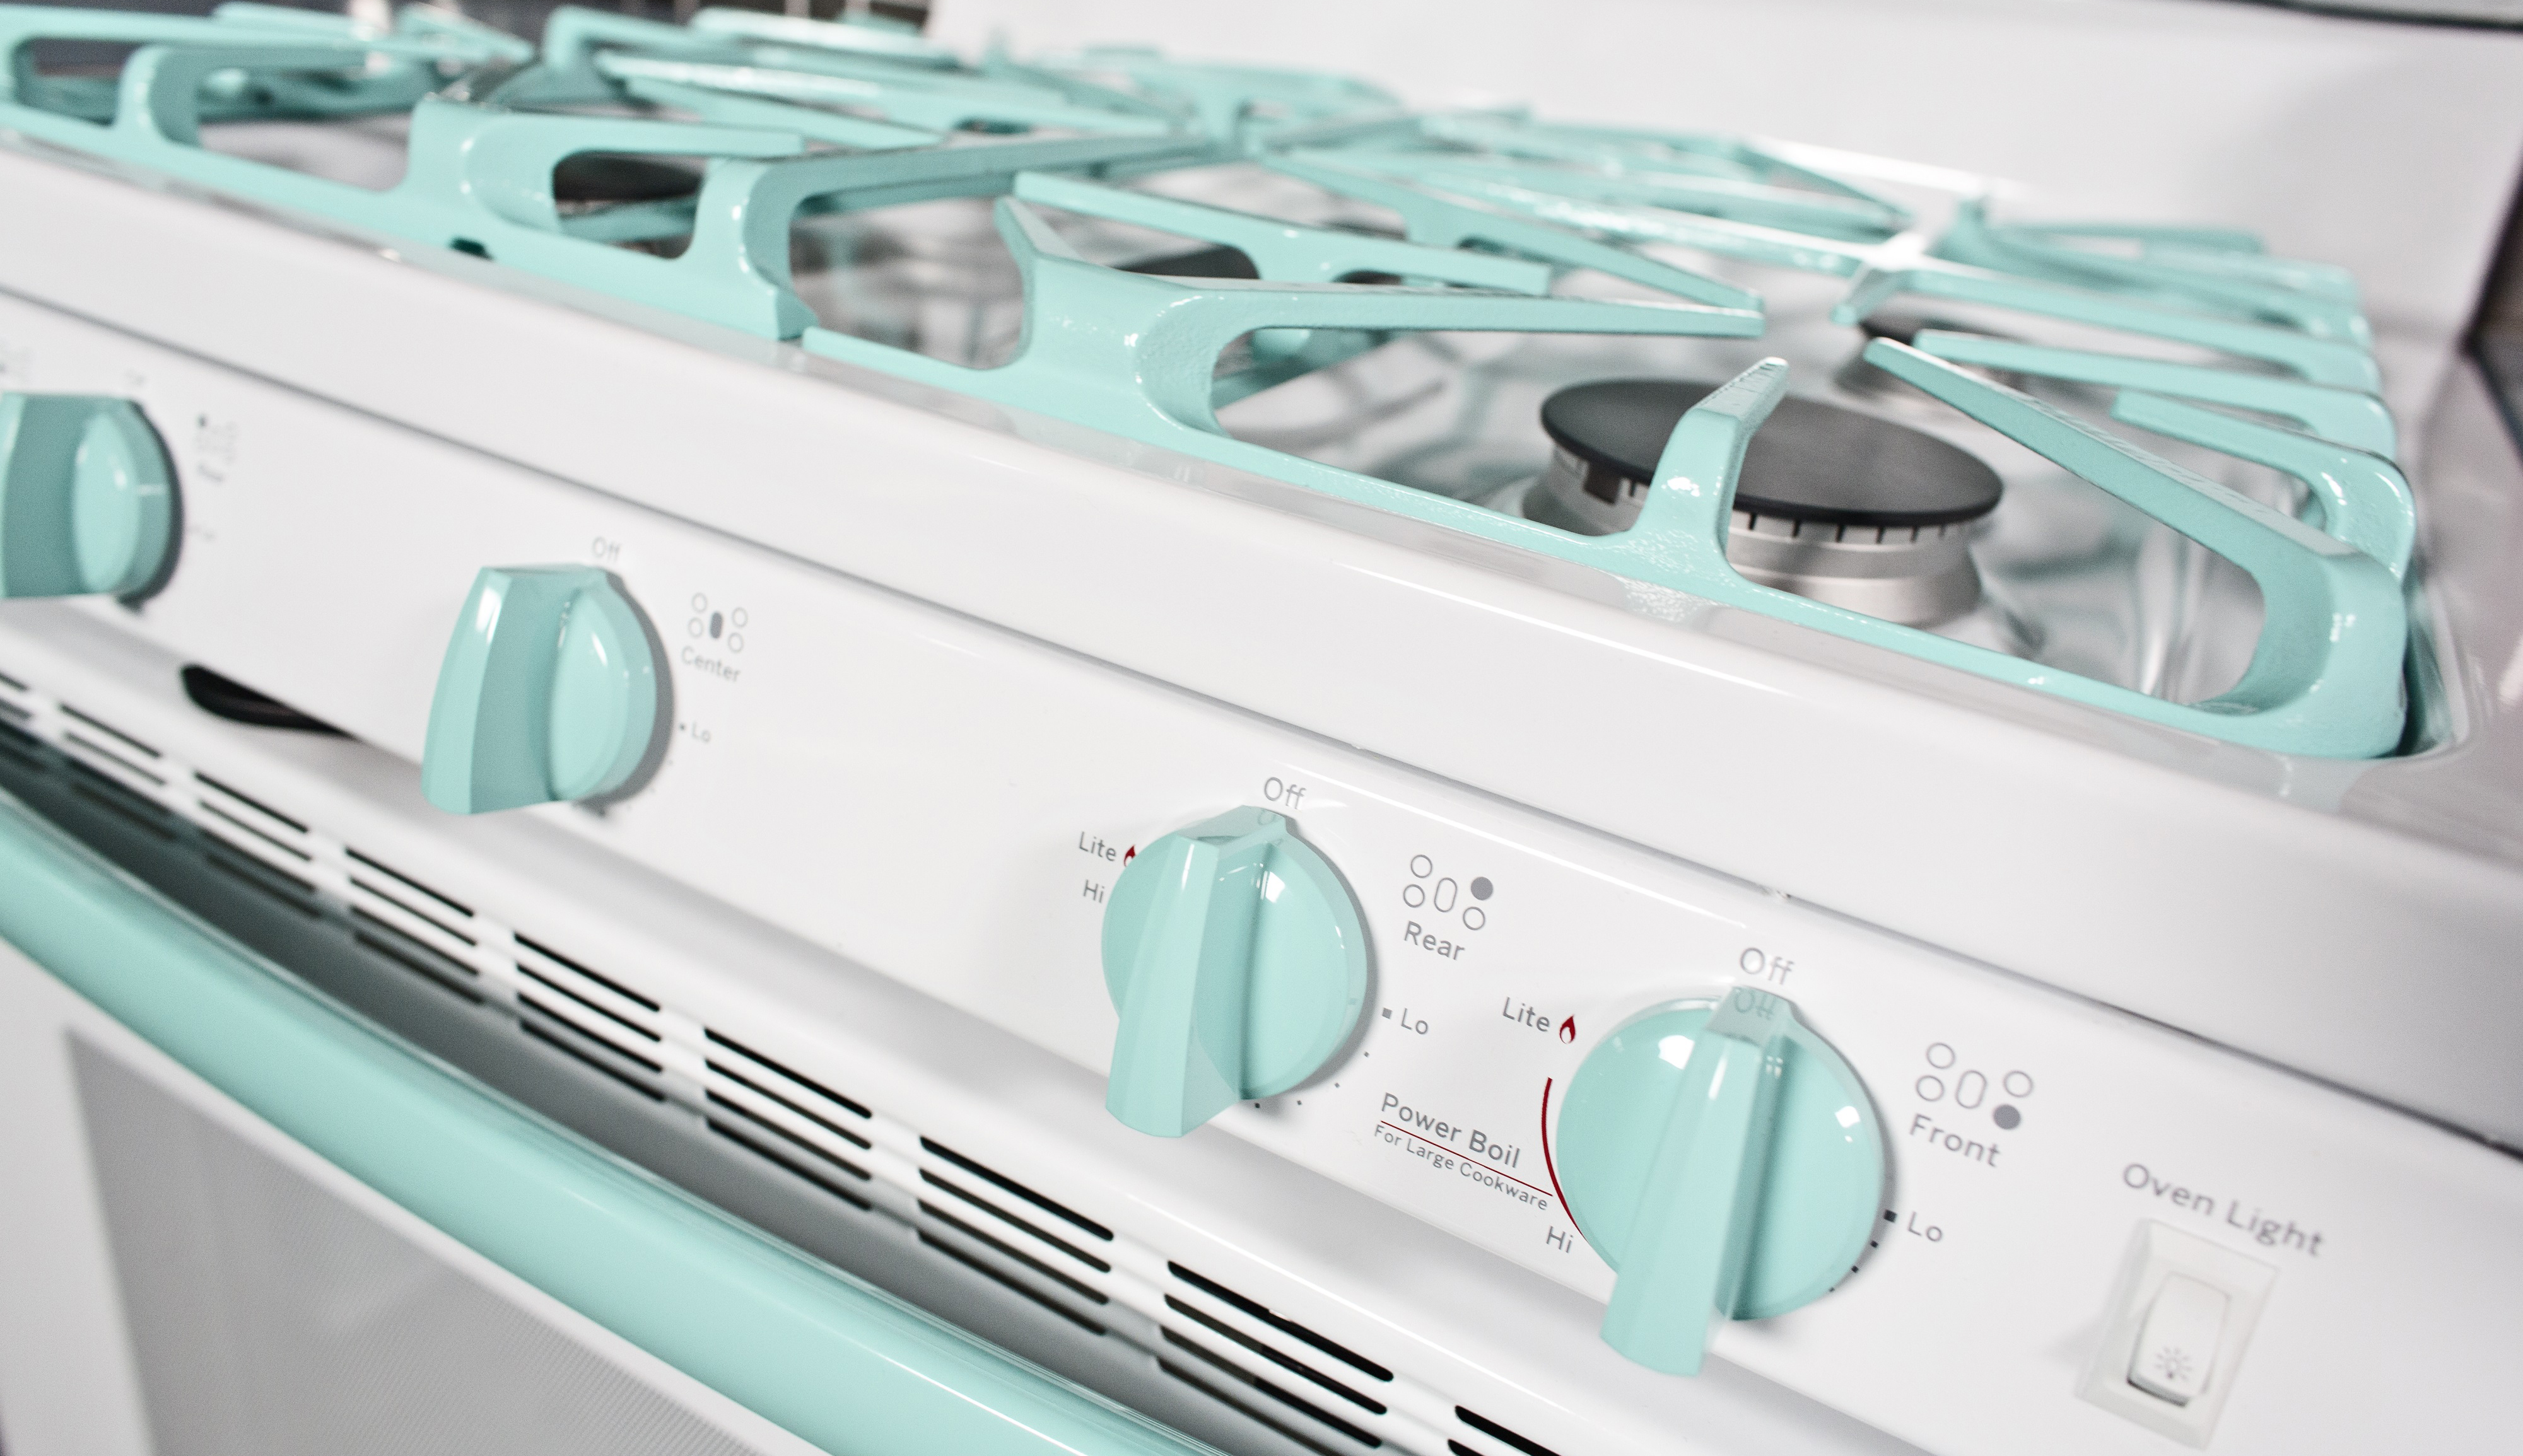 2015 Home trends — GE Accessories